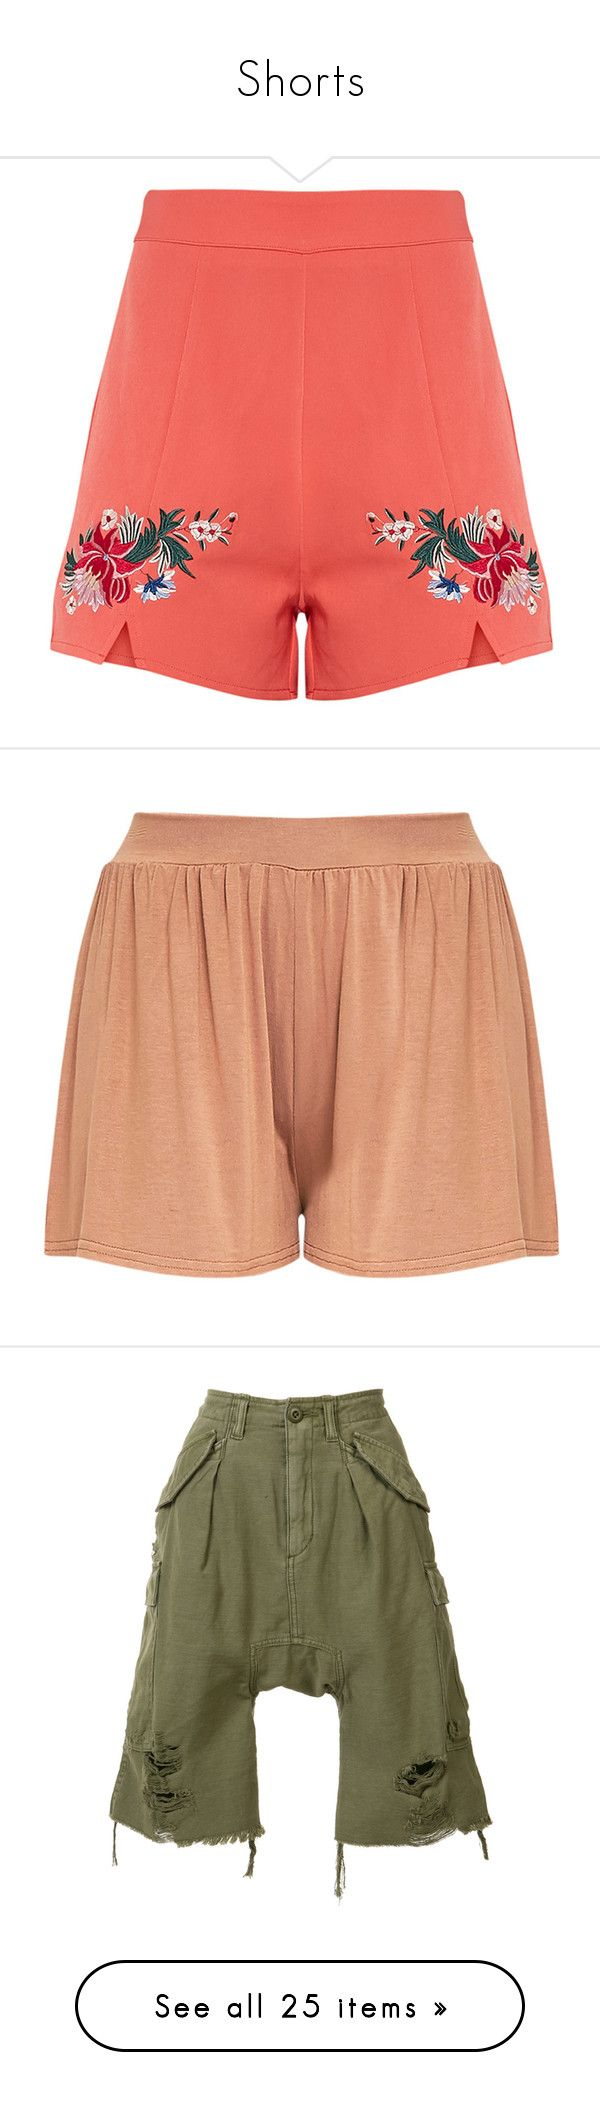 """Shorts"" by christined1960 ❤ liked on Polyvore featuring shorts, floral shorts, floral print shorts, coral shorts, flower print shorts, floral printed shorts, camel shorts, stretch waist shorts, jersey shorts and elastic waist shorts"